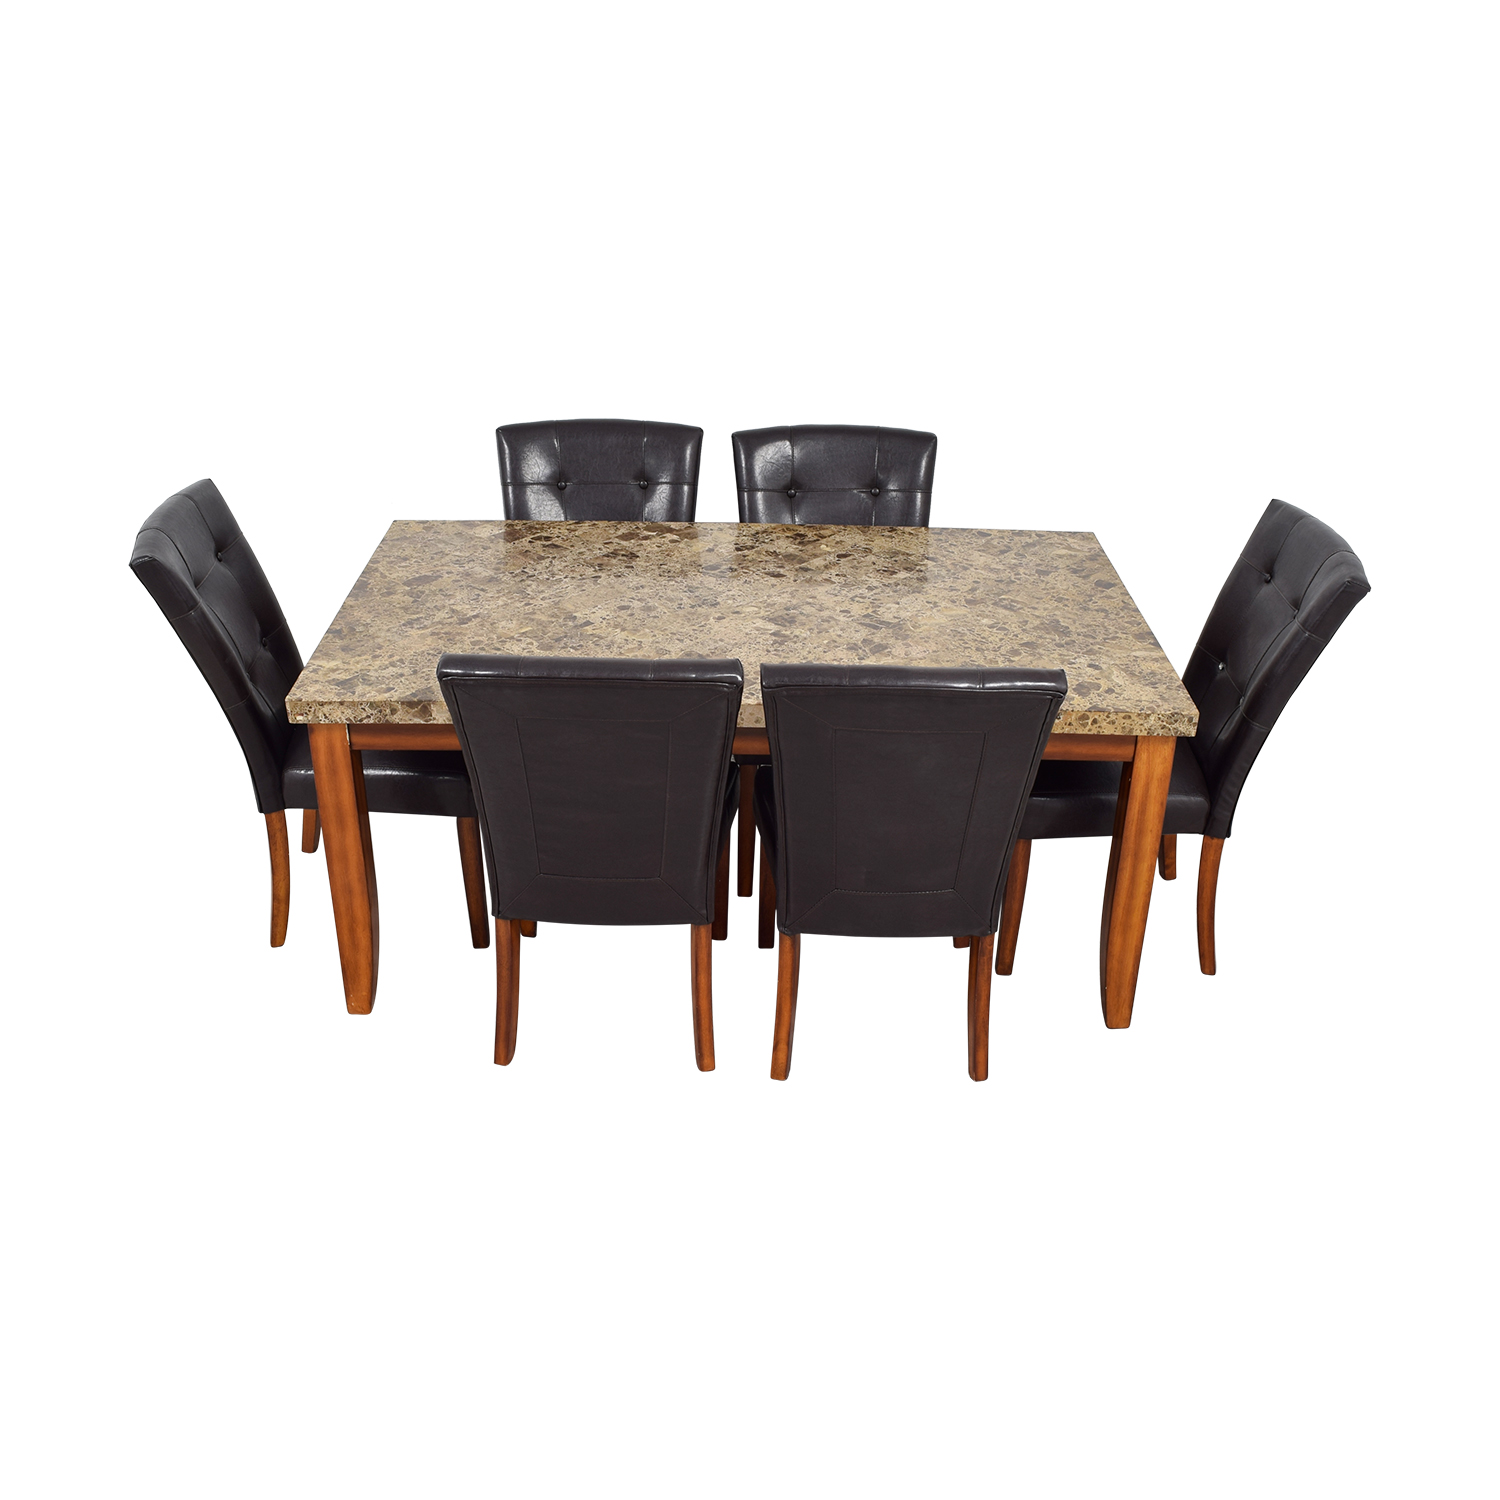 69% OFF - Bob\'s Discount Furniture Bob\'s Furniture Faux Marble Dining Set /  Tables